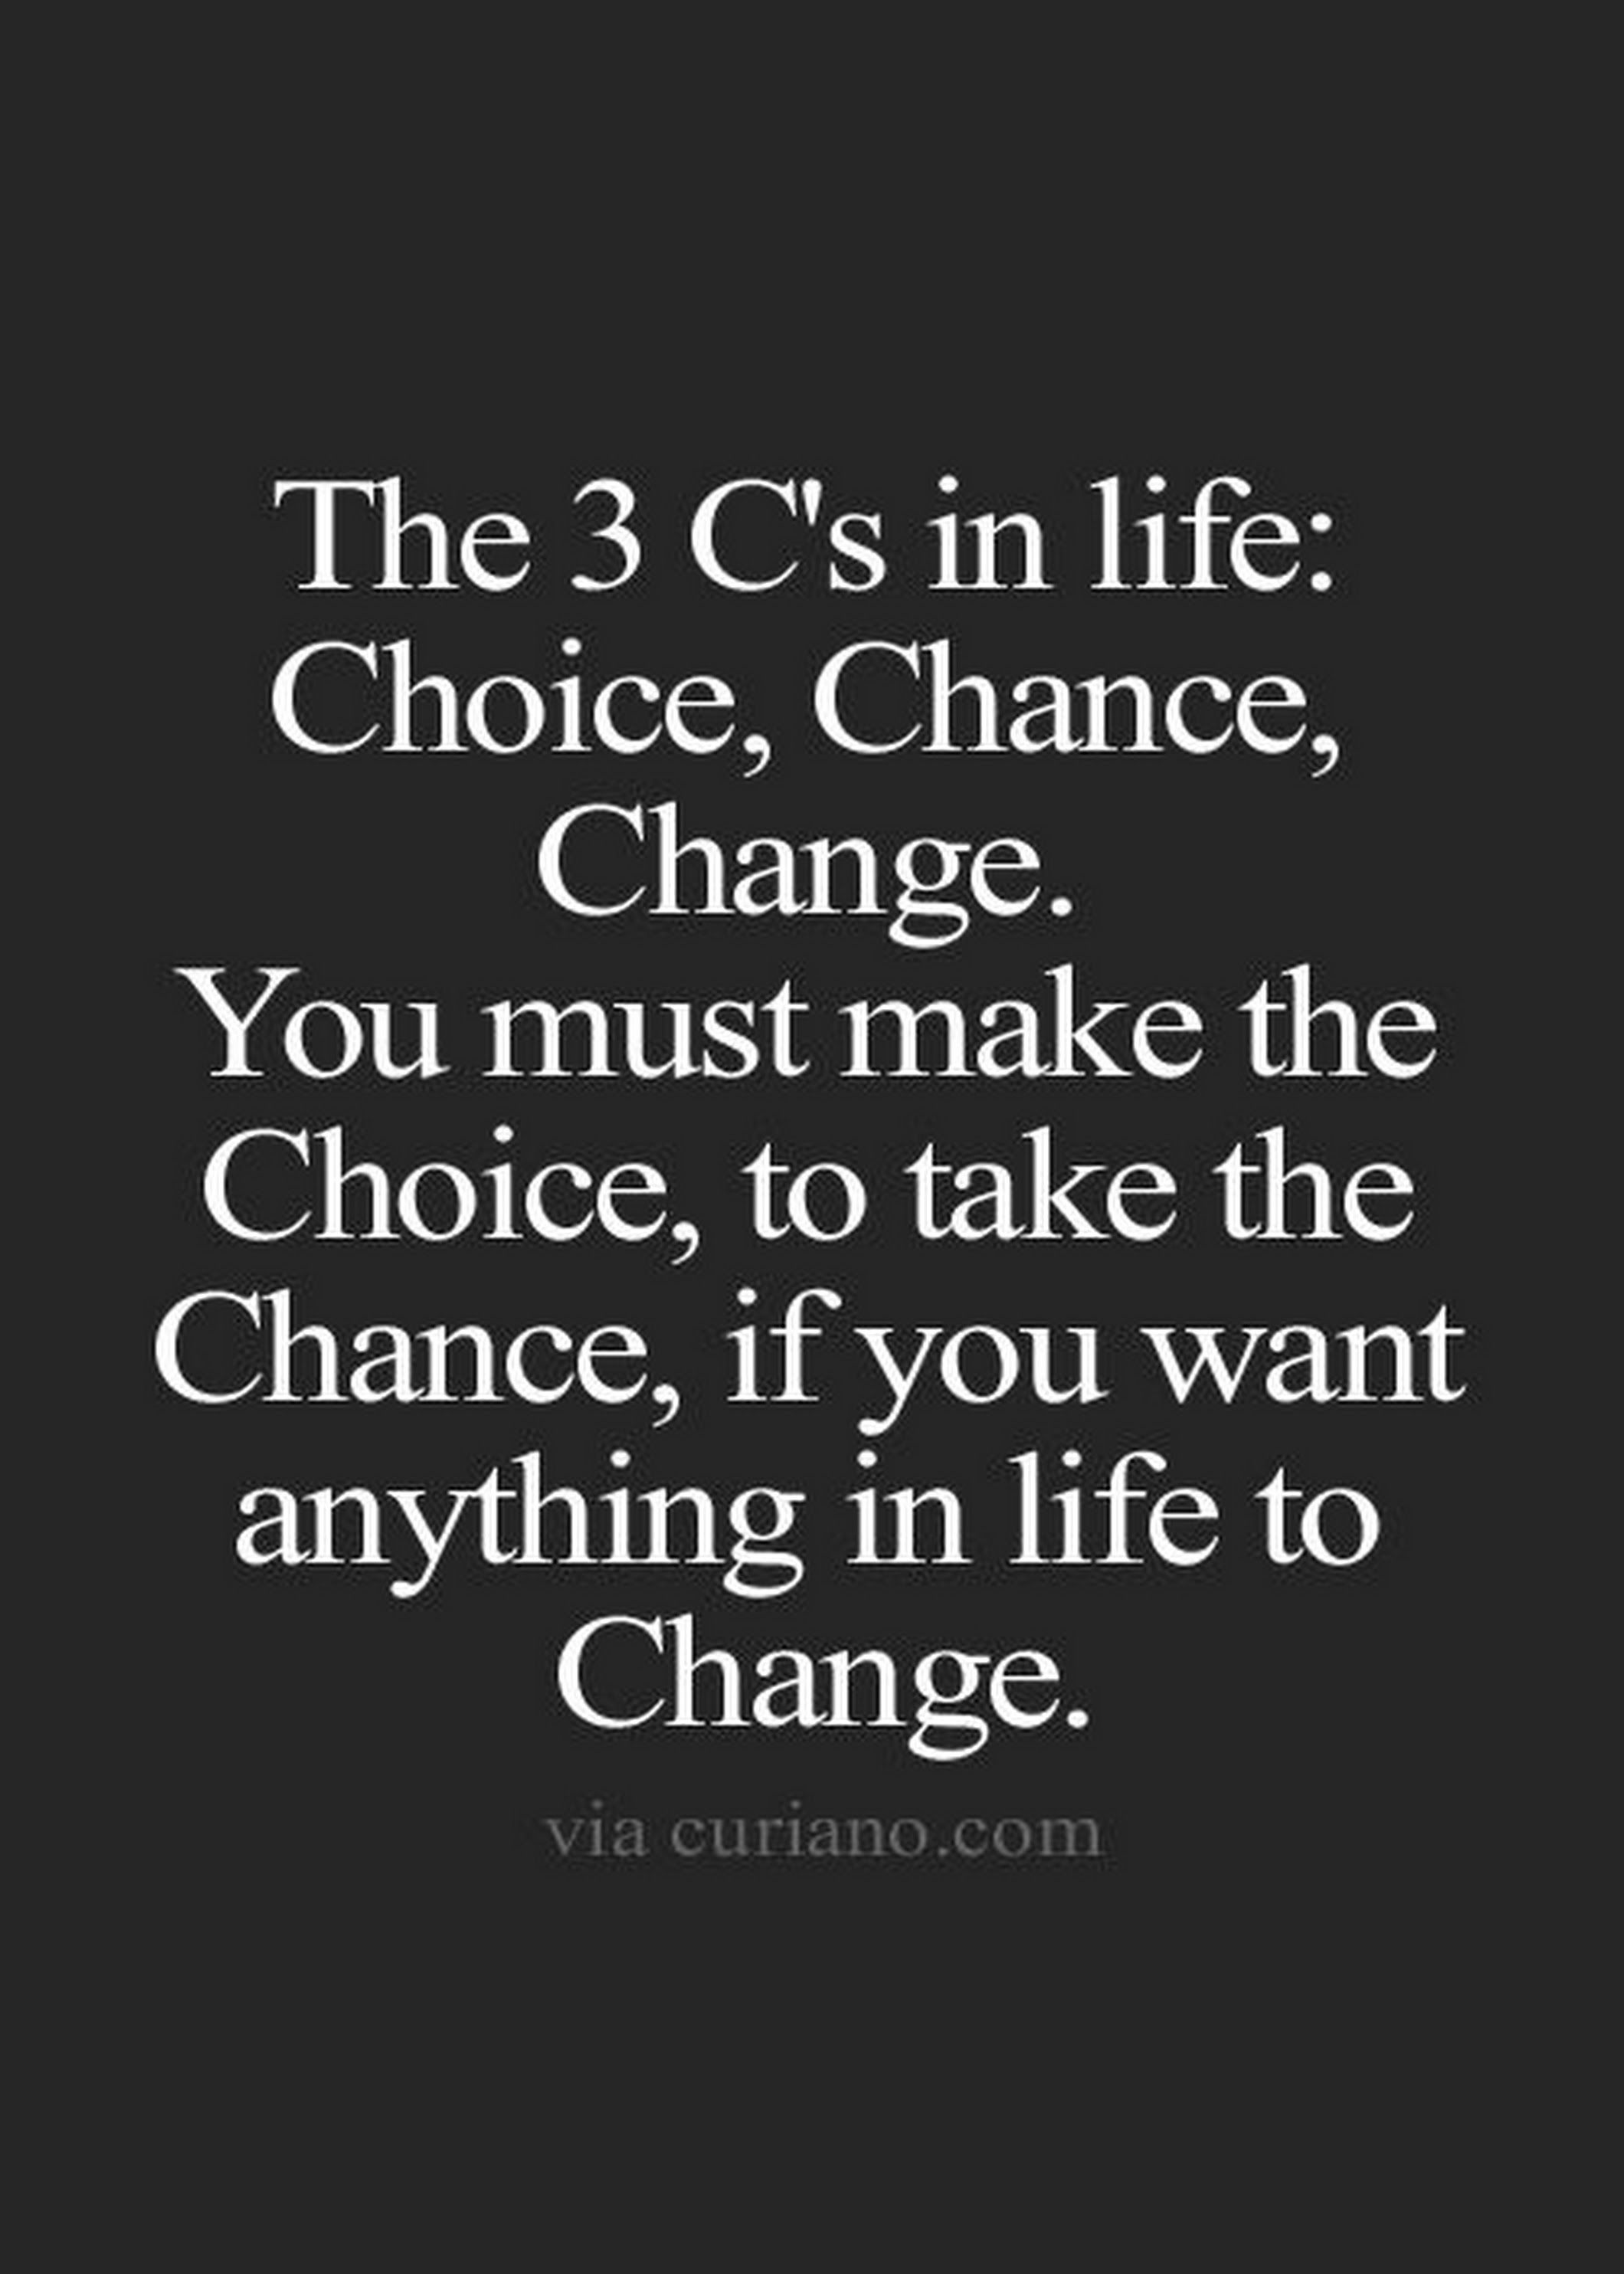 Friends Later In Life Quotes: The 3 C's In Life: Choice, Chance, Change. You Must Make